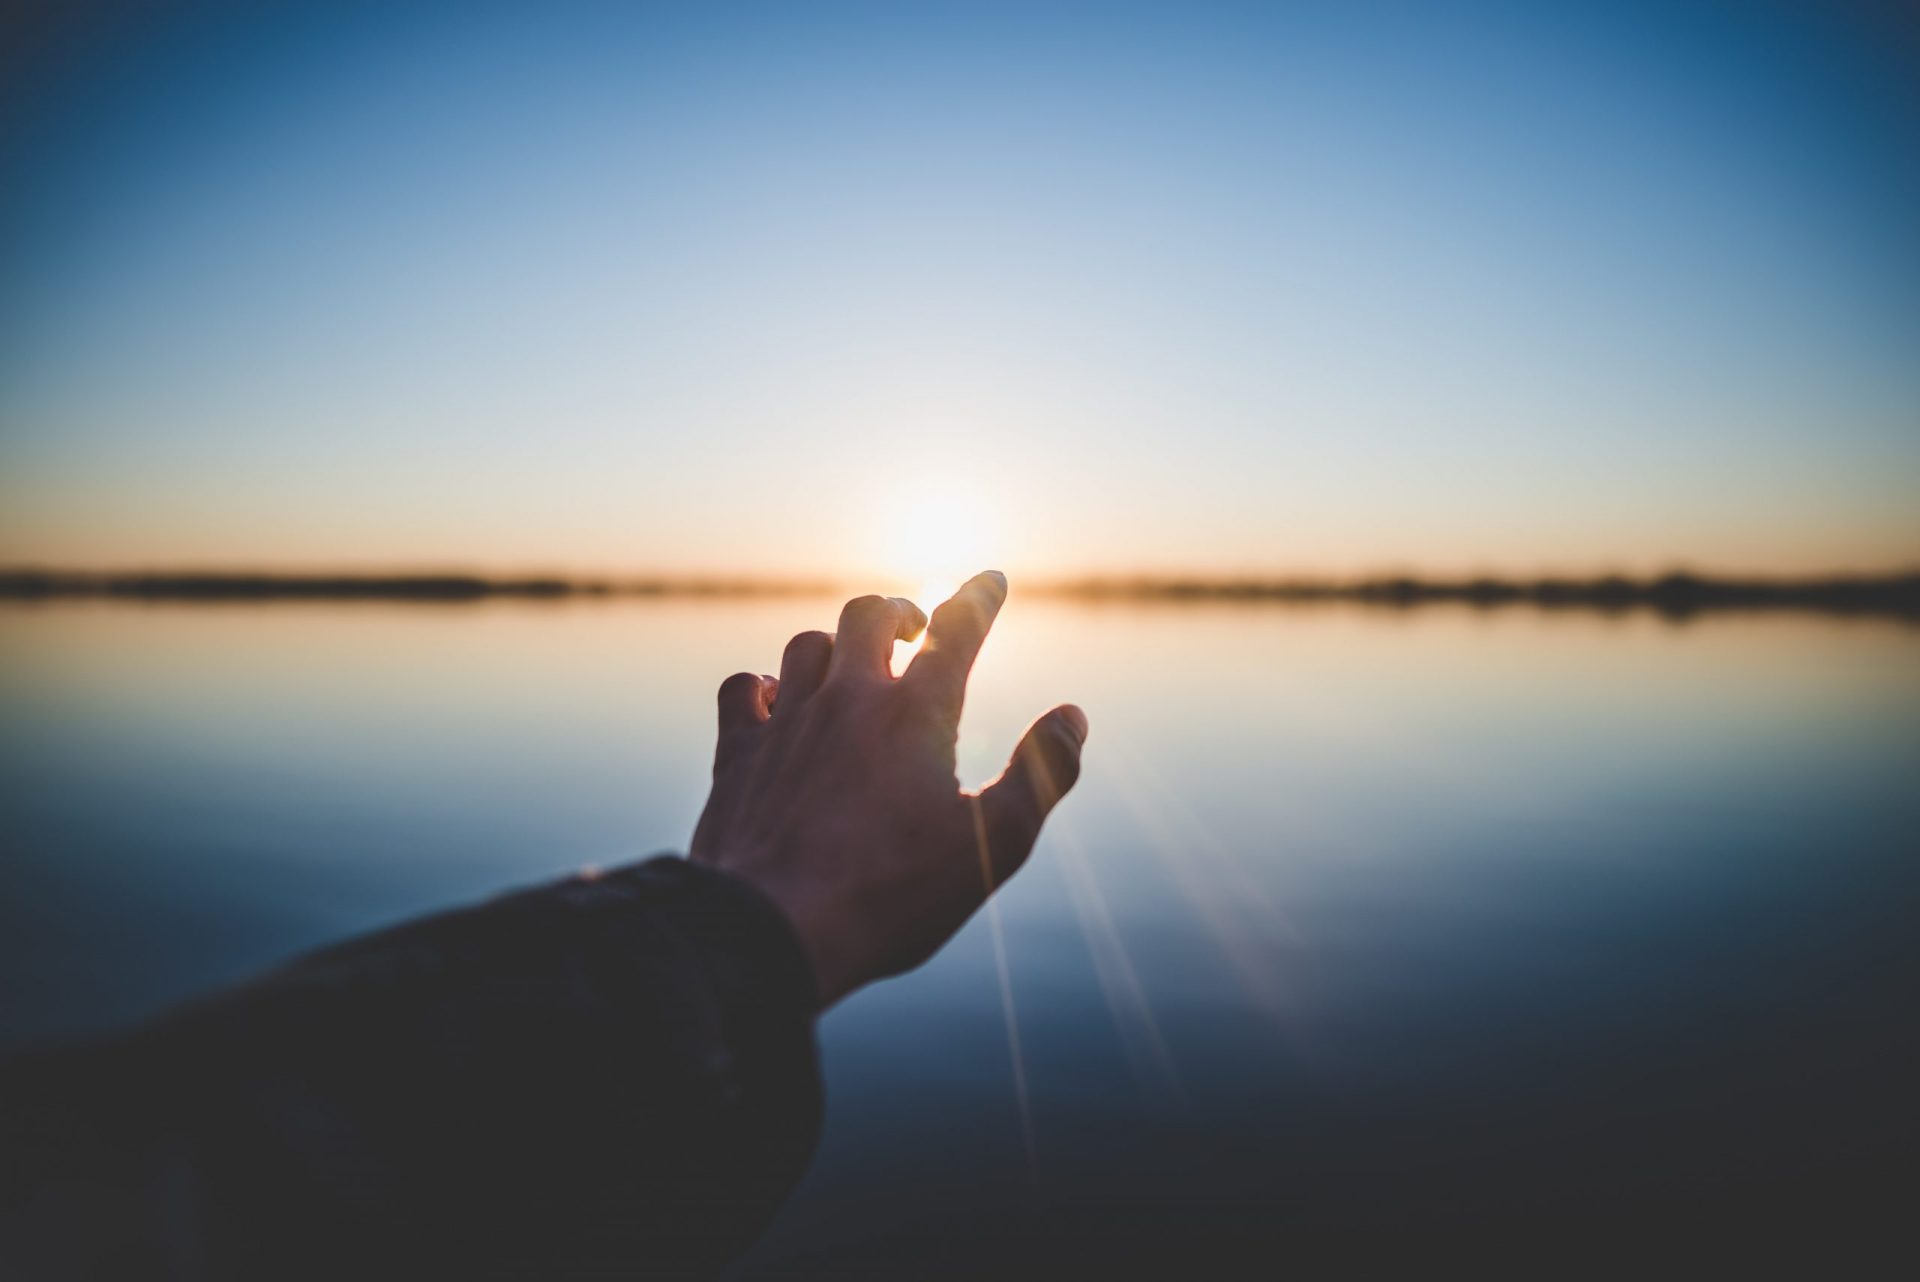 Hand reaching out to sunset over water. Representing panic attach treatment